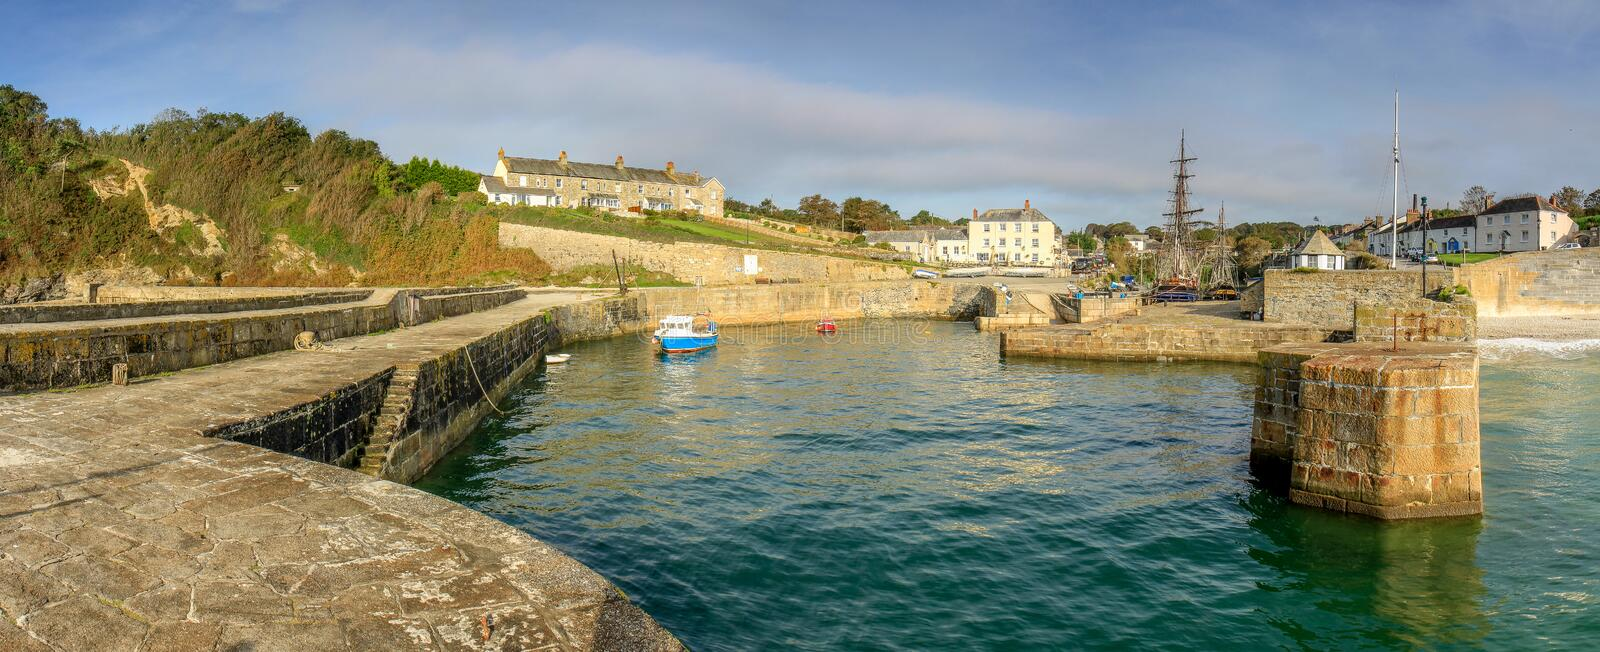 High Tide, Charlestown Harbour, Cornwall. With views of tall ships and holiday cottages royalty free stock photography